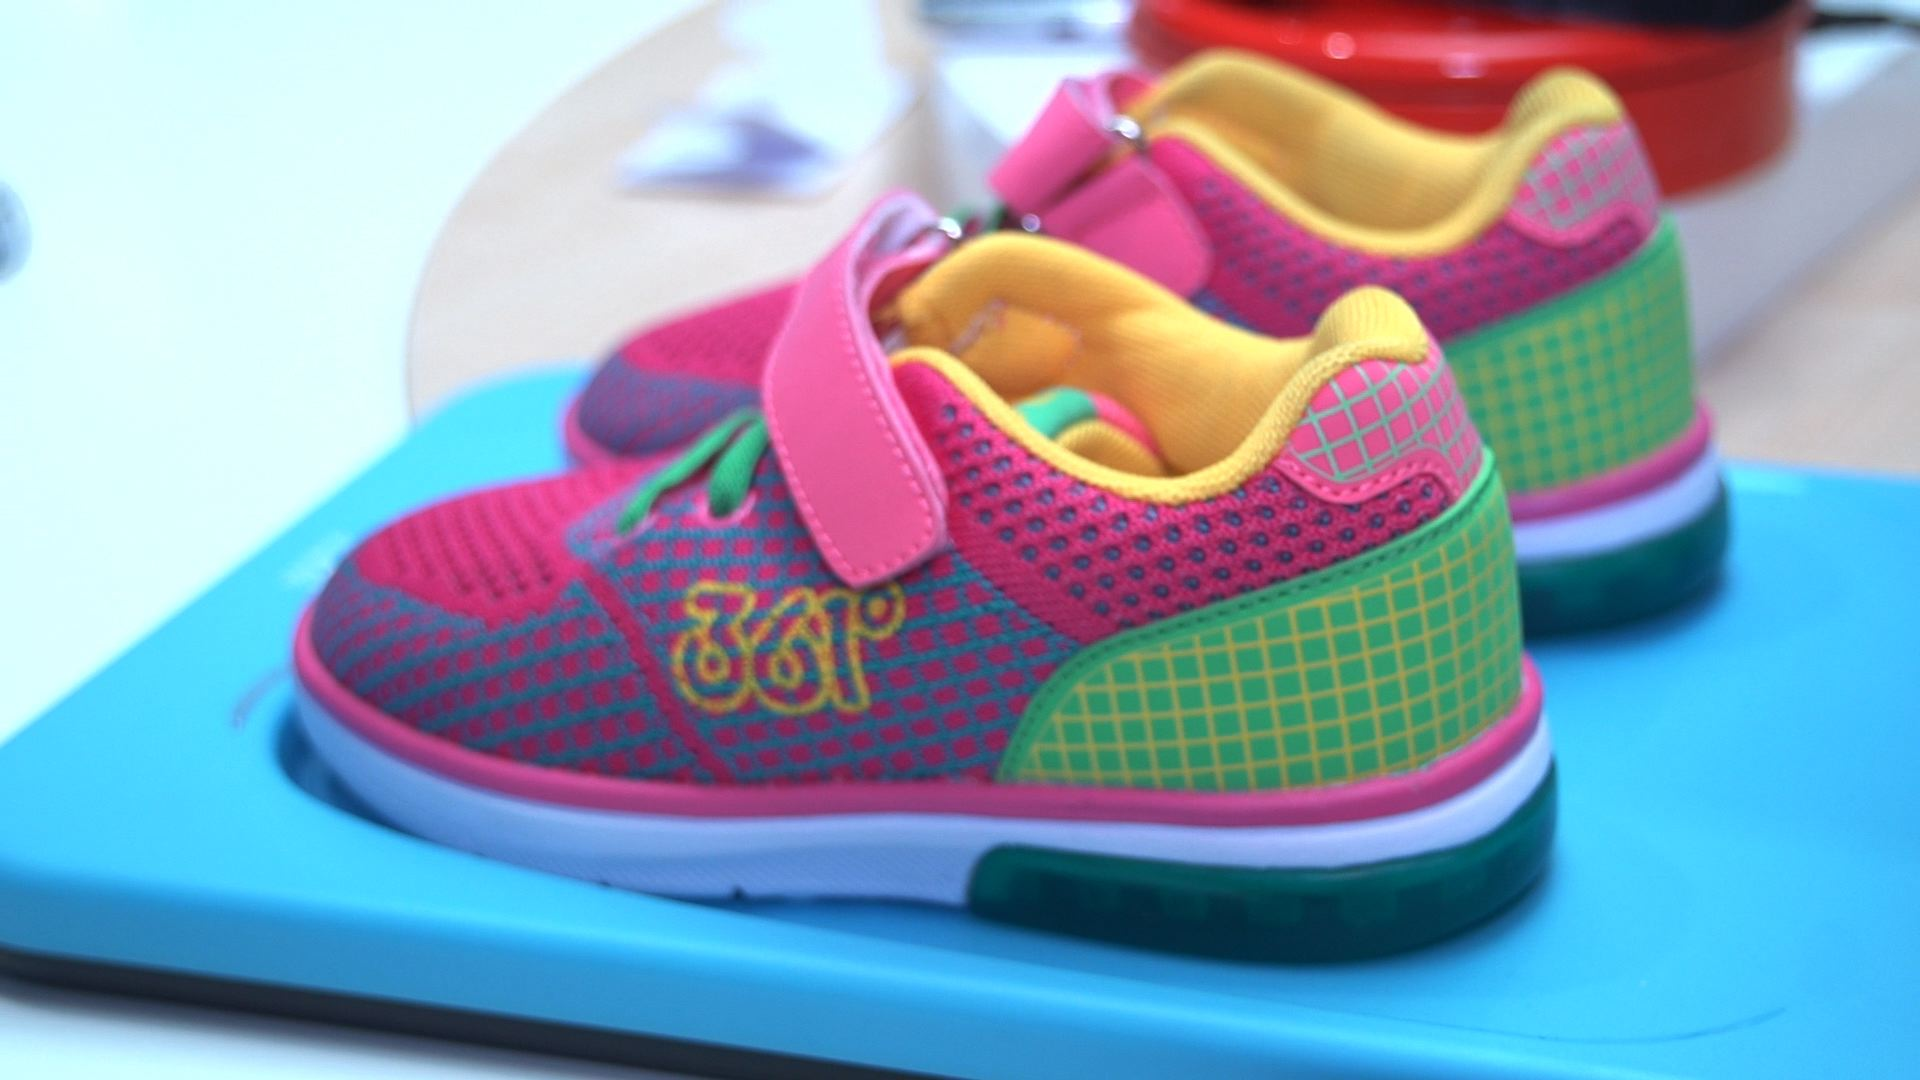 Video: These smart shoes track your kid's location